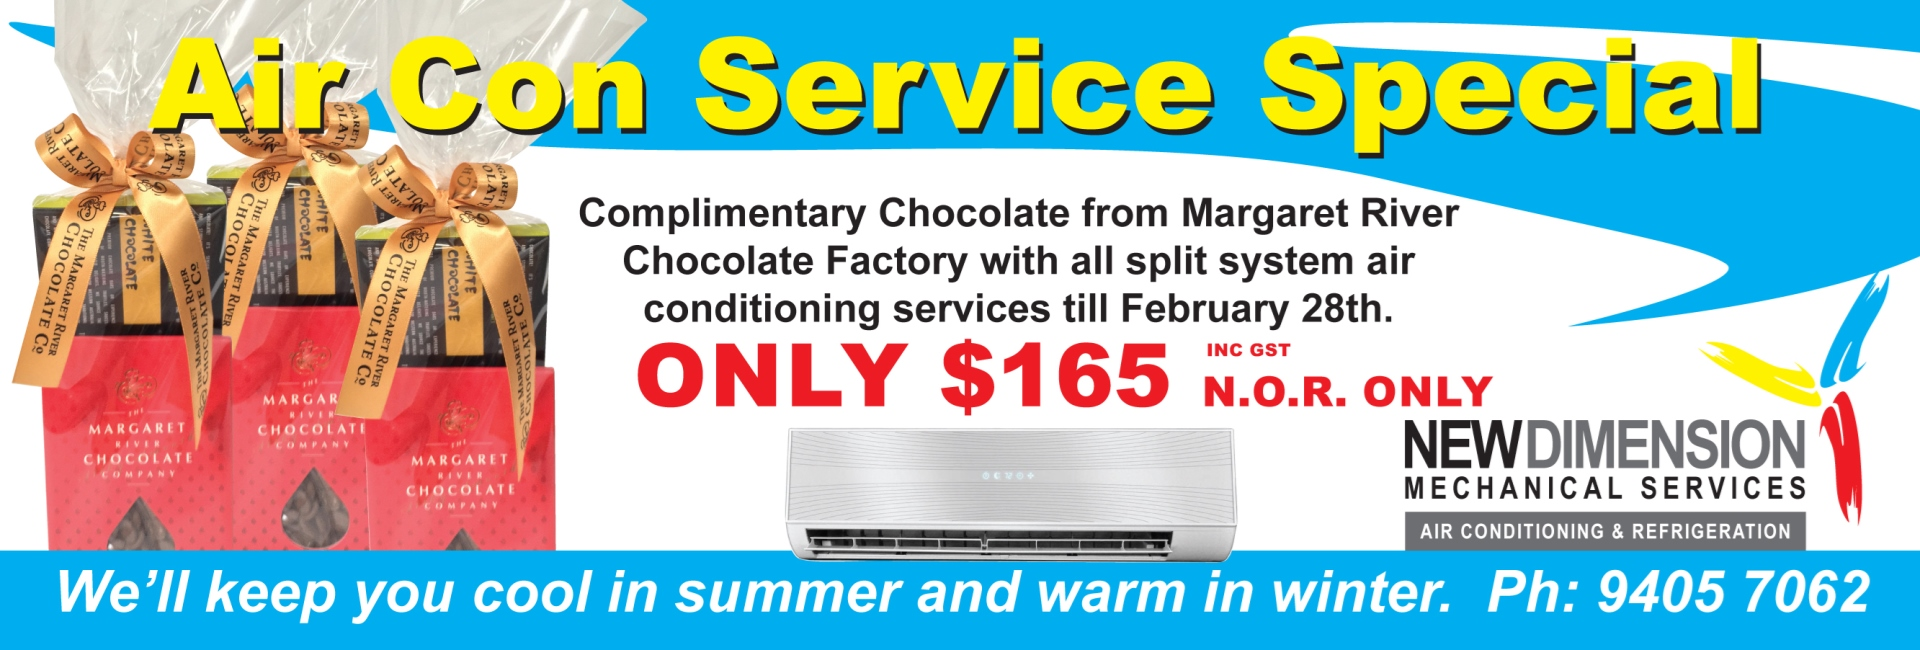 NDMS Slider Air Con Special Offer